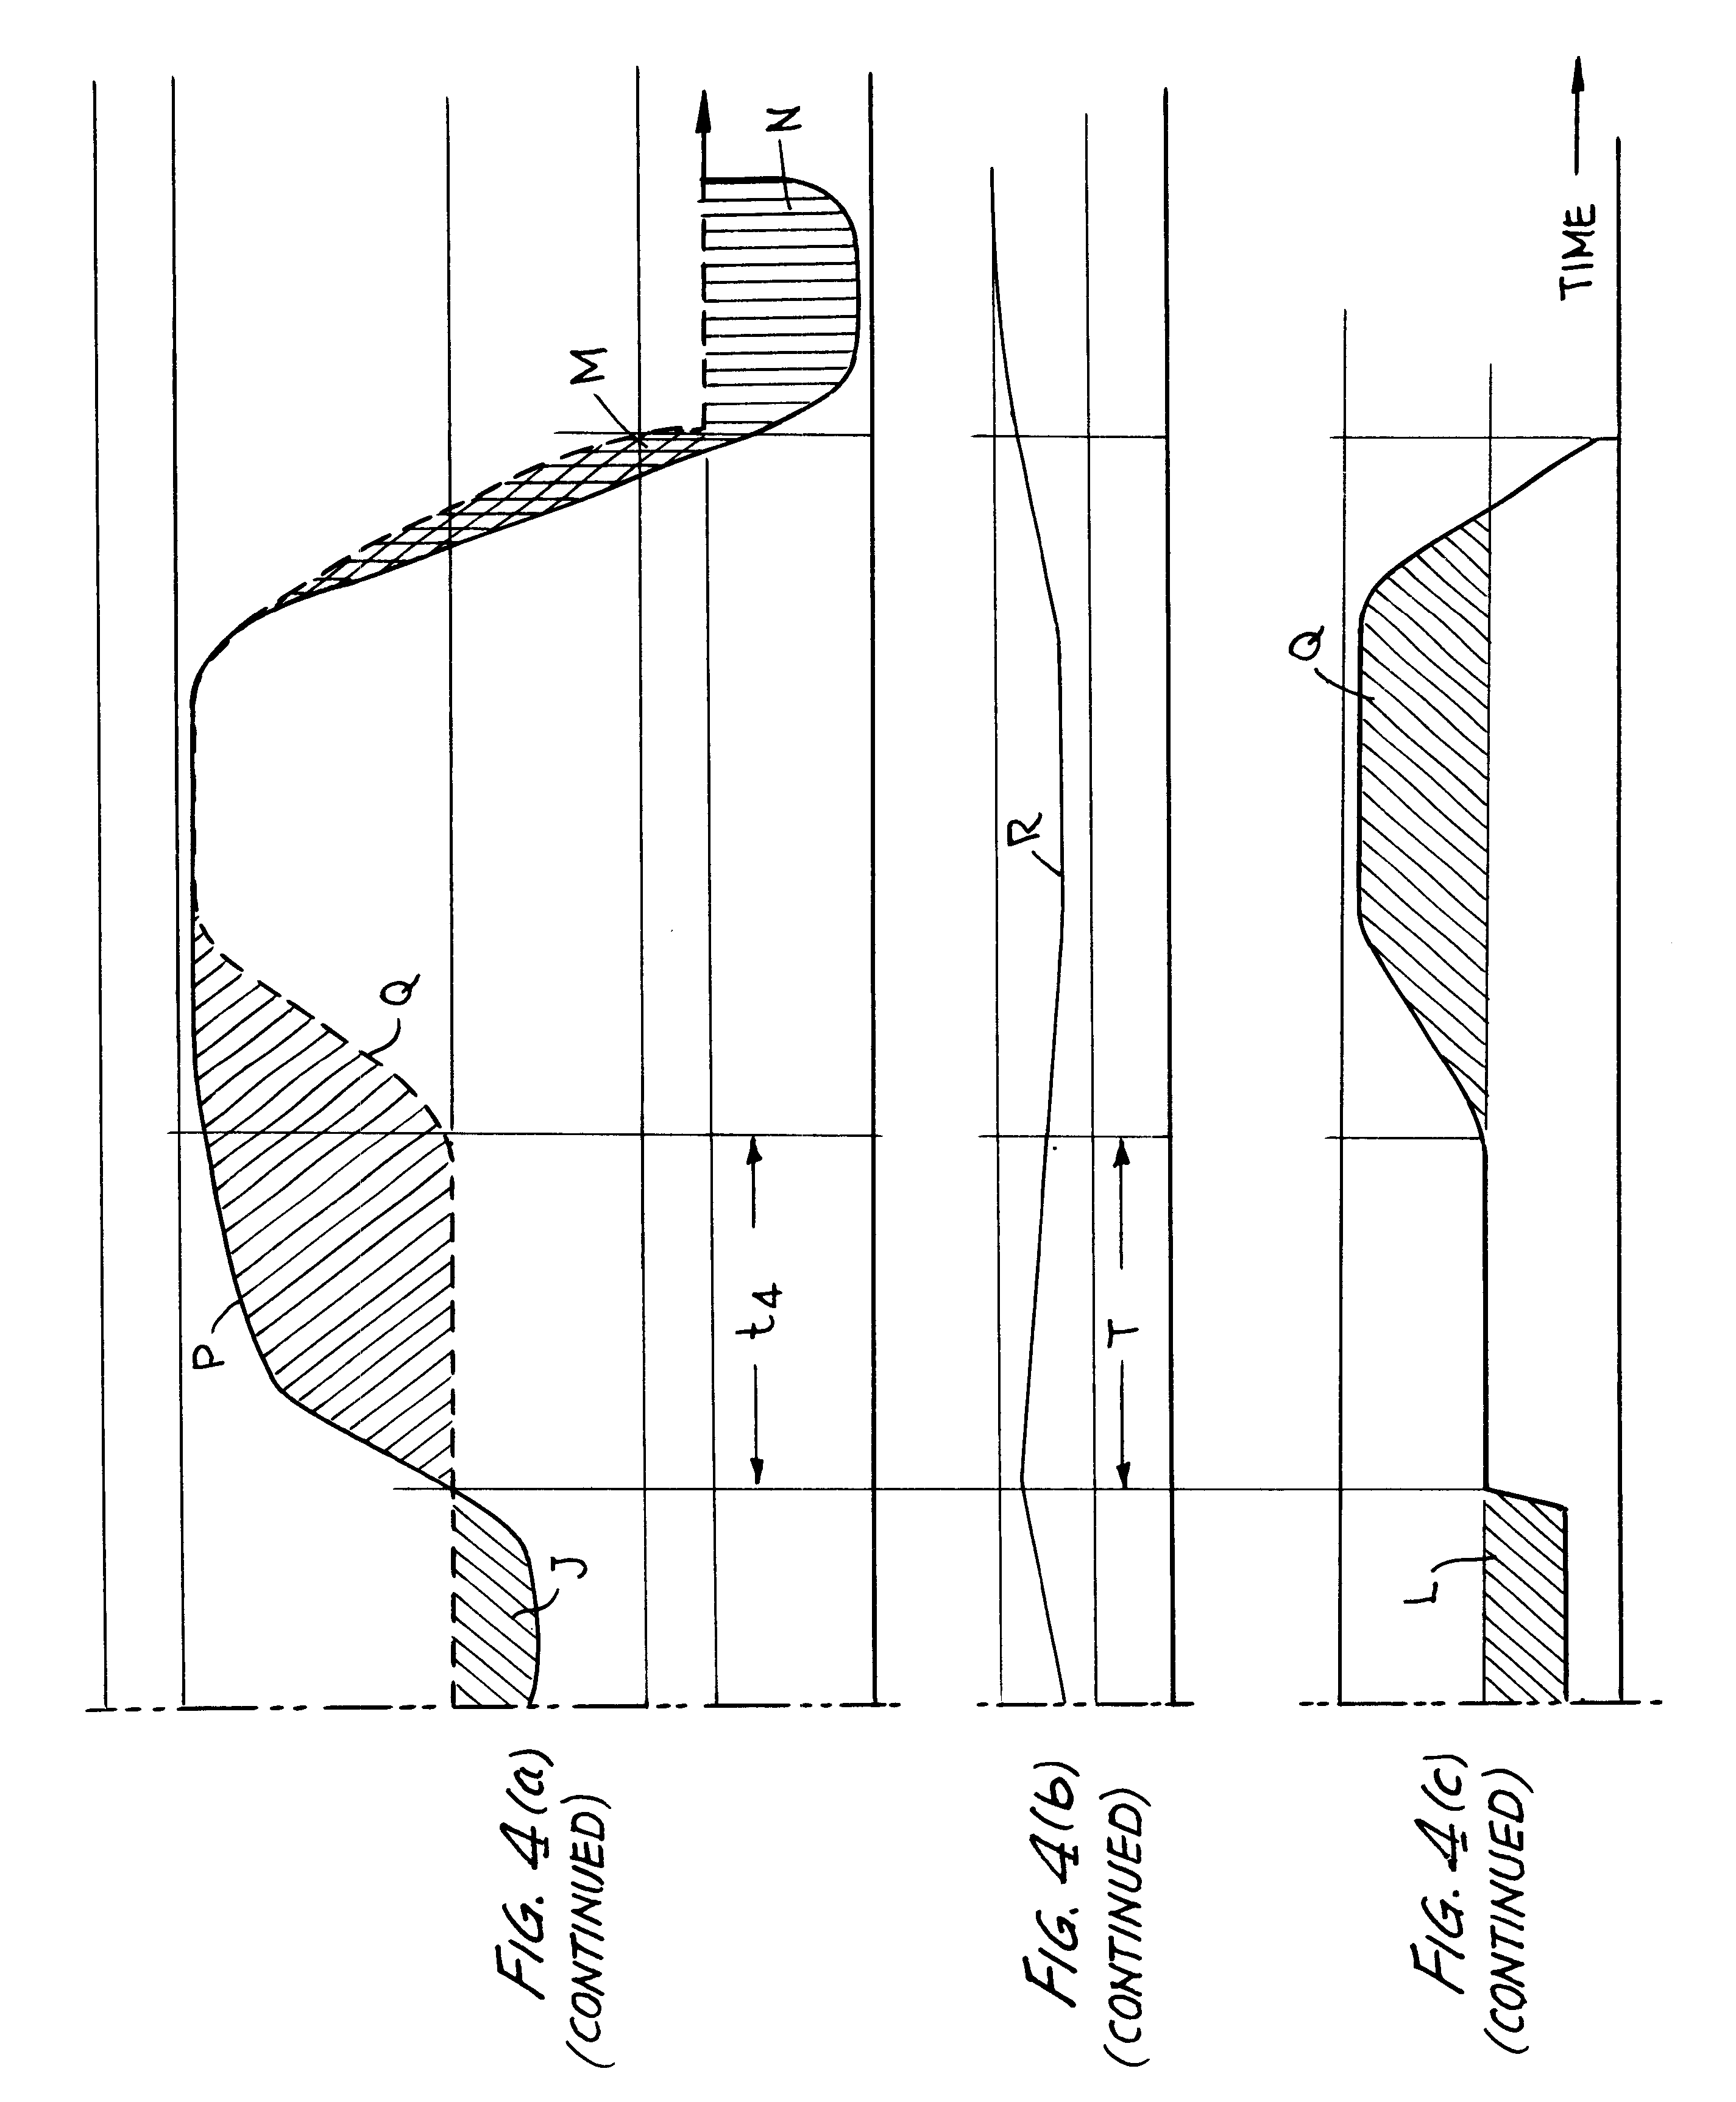 Electric Turbocharger Patents: Hybrid Vehicles Incorporating